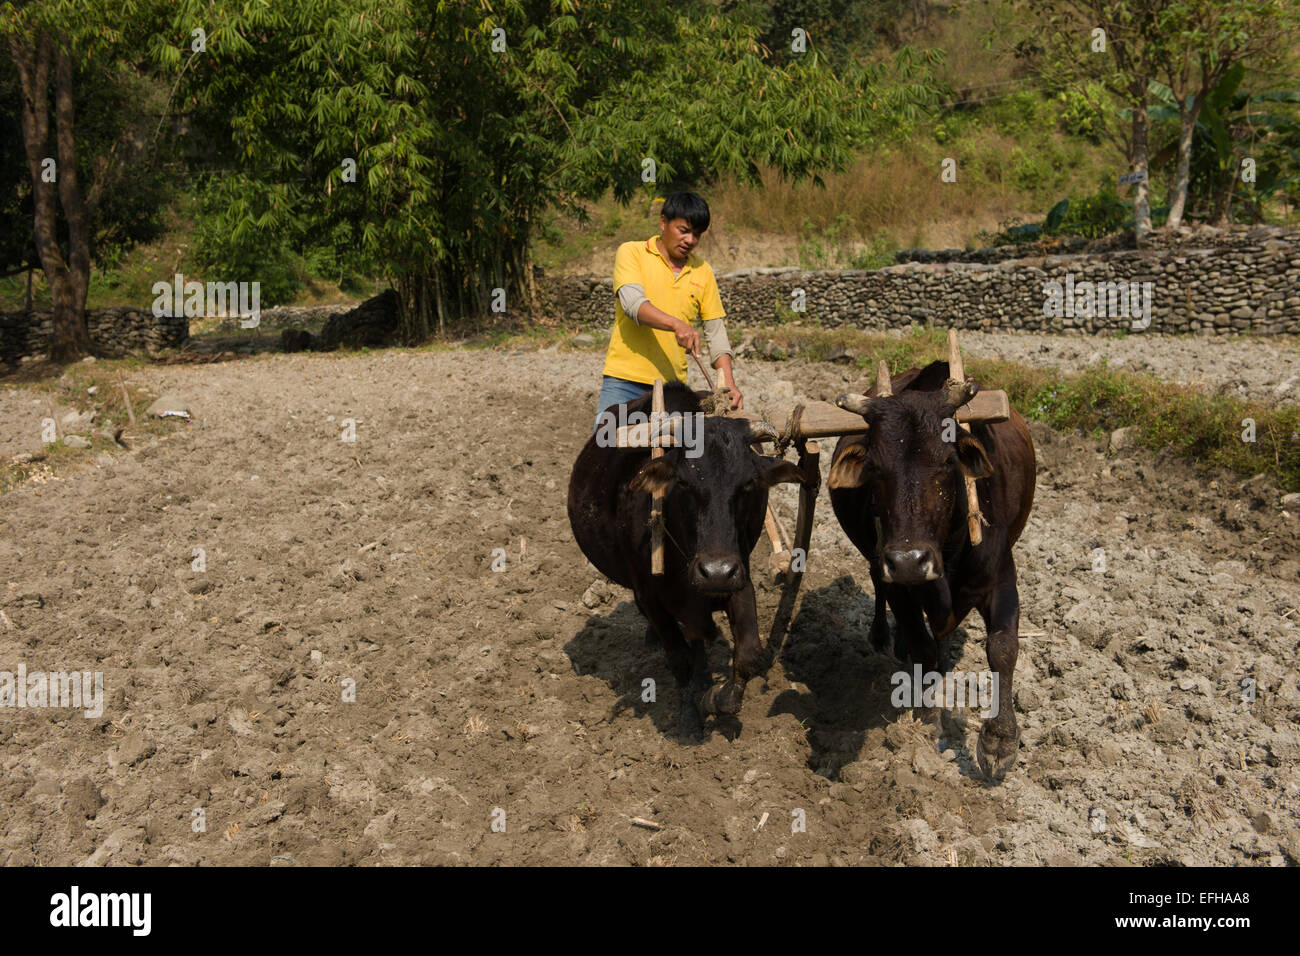 Ploughing fields on the Royal Trek, near Pokhara, Nepal - Stock Image